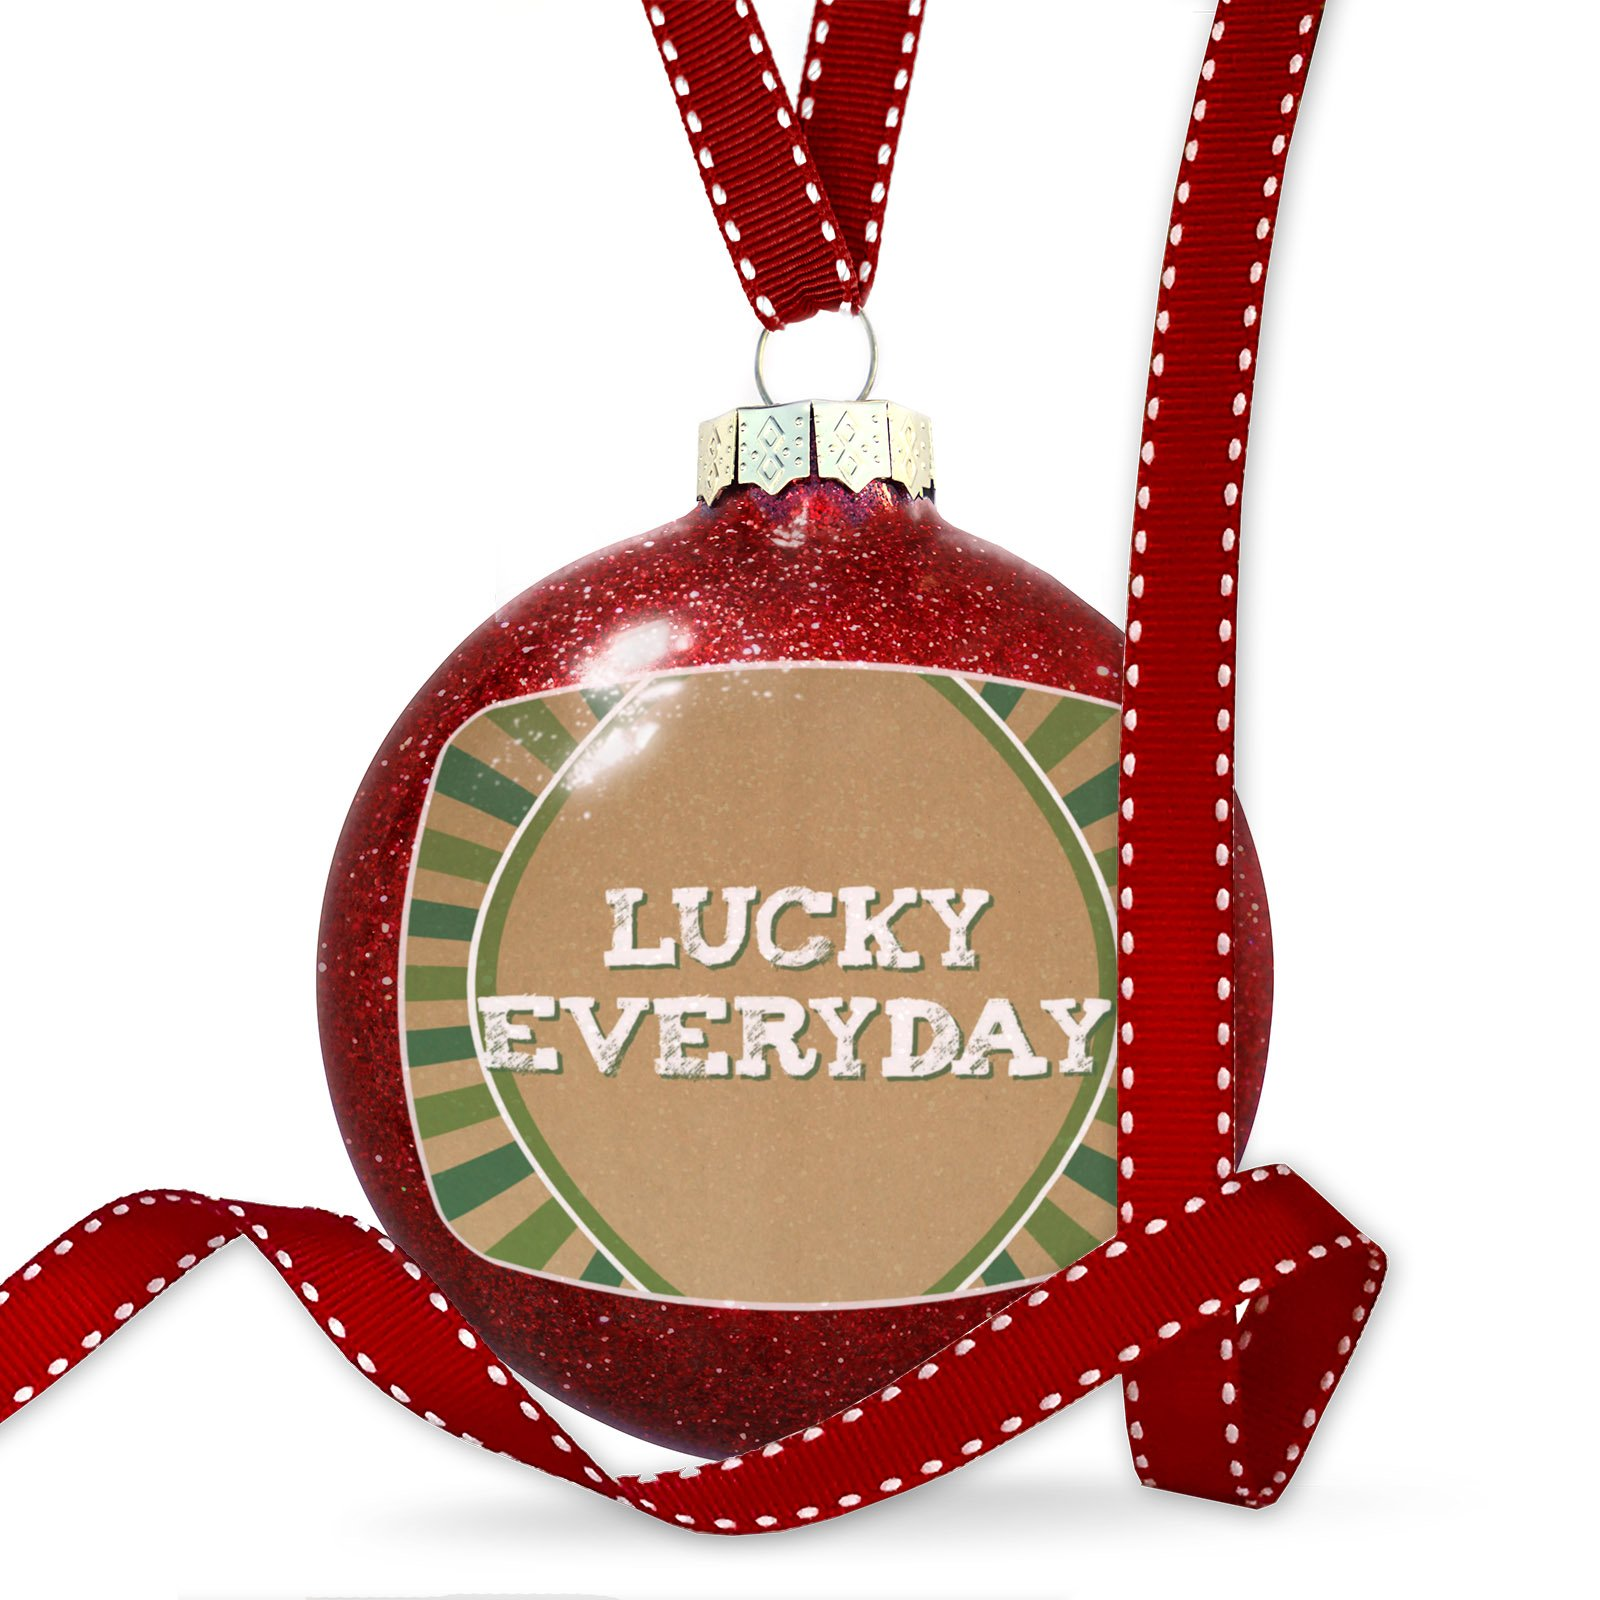 Christmas Decoration Lucky Everyday St. Patrick's Day Retro Design Ornament by NEONBLOND